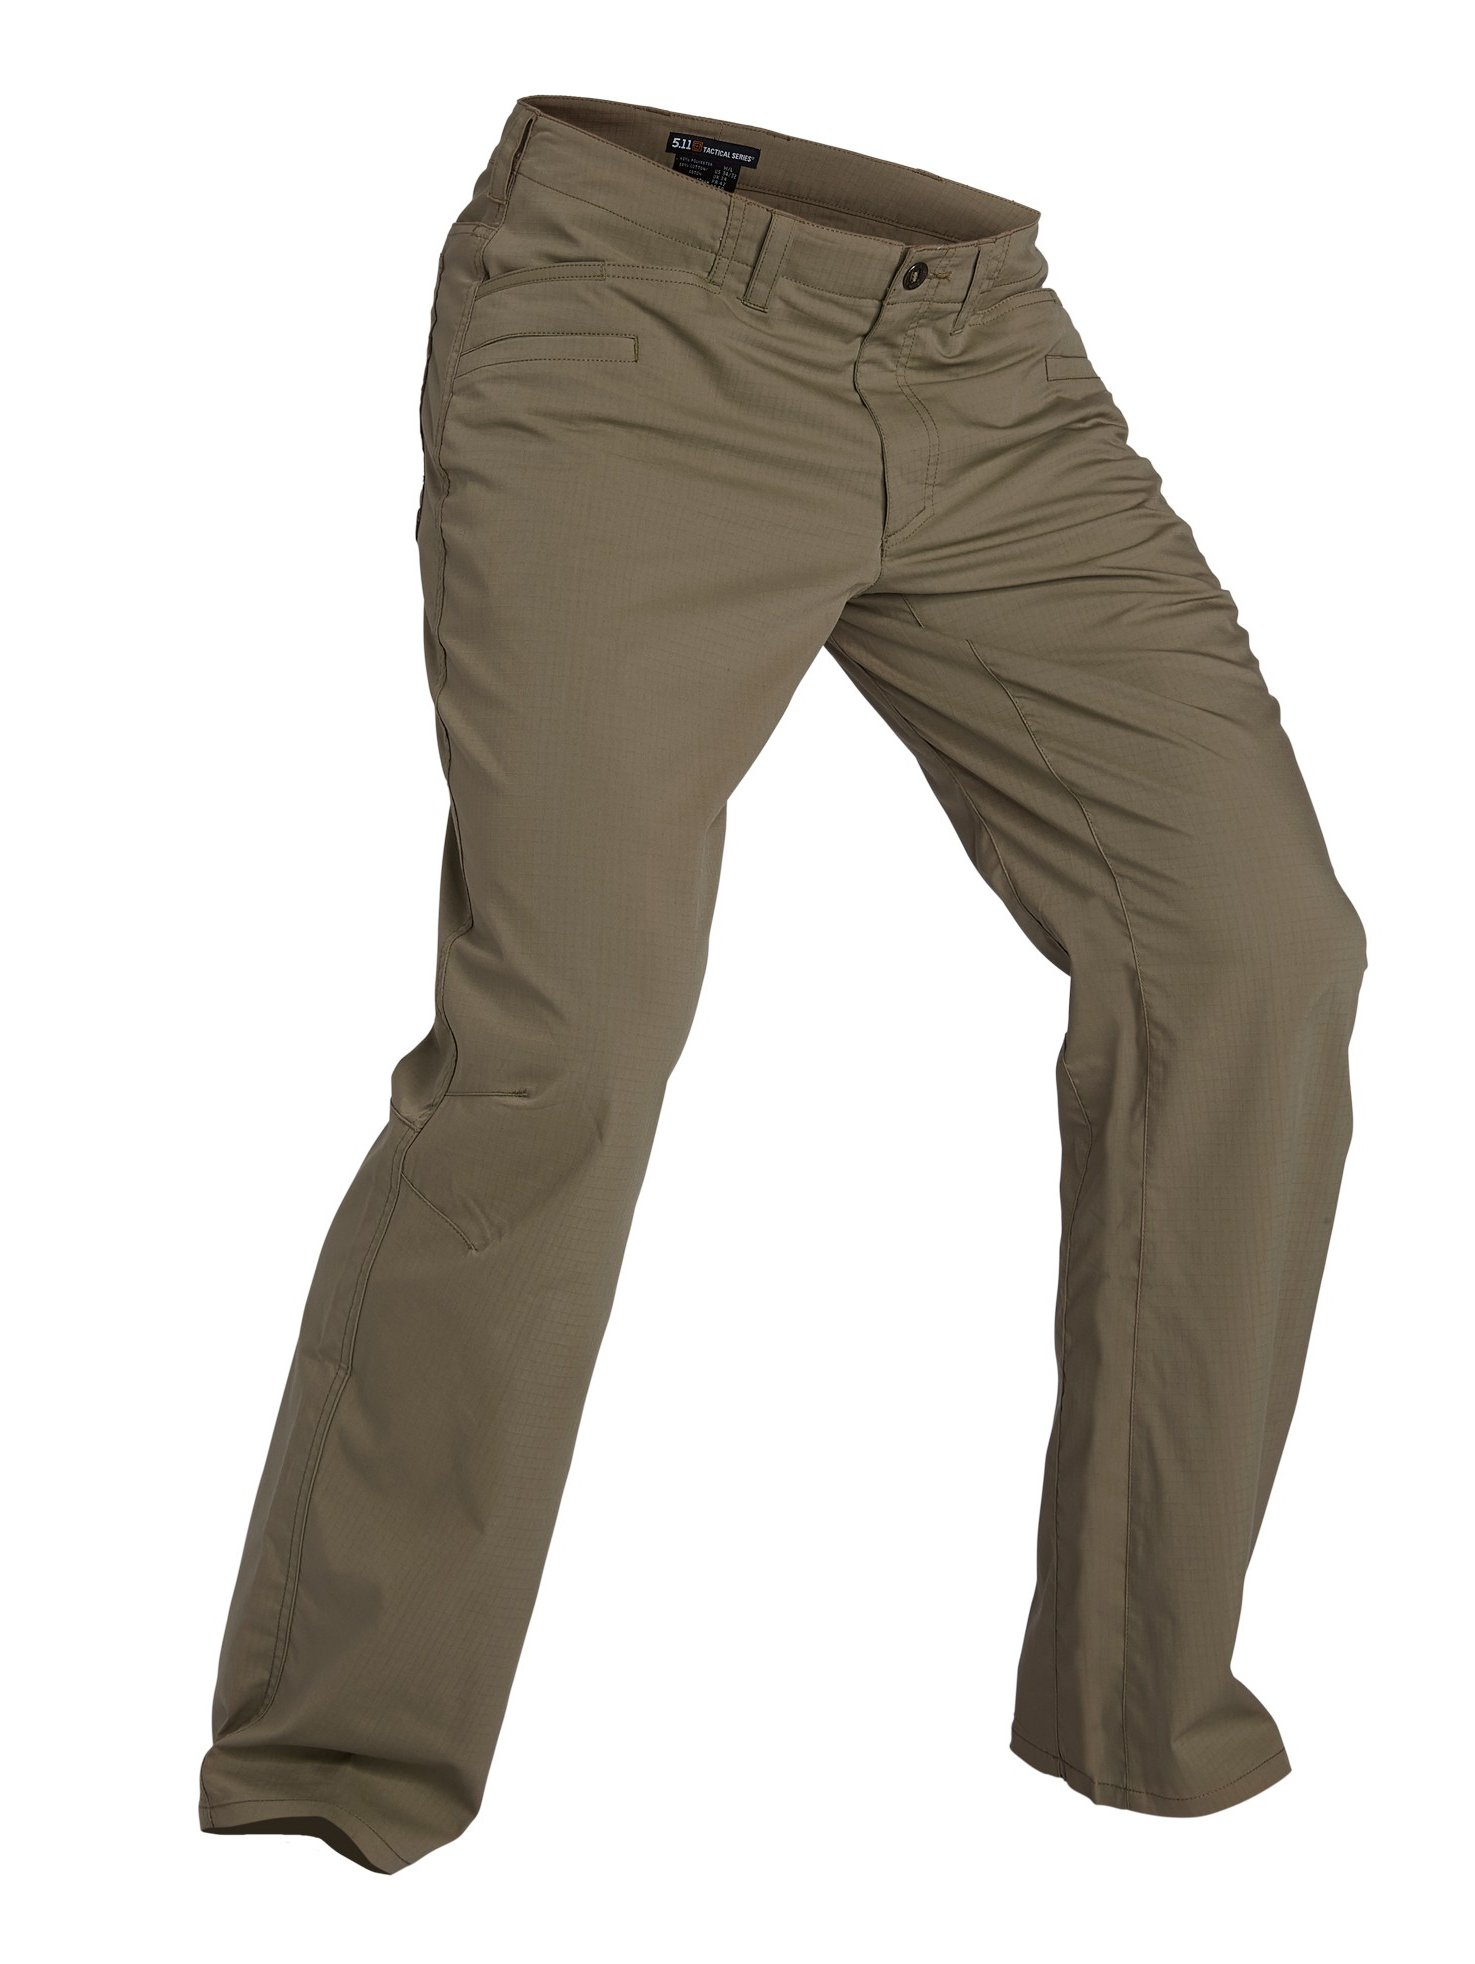 5.11 Tactical Men's Ridgeline Covert Pants, Teflon Finish, Poly-Cotton Ripstop Fabric, Stone, 38Wx32L, Style 74411 by 5.11